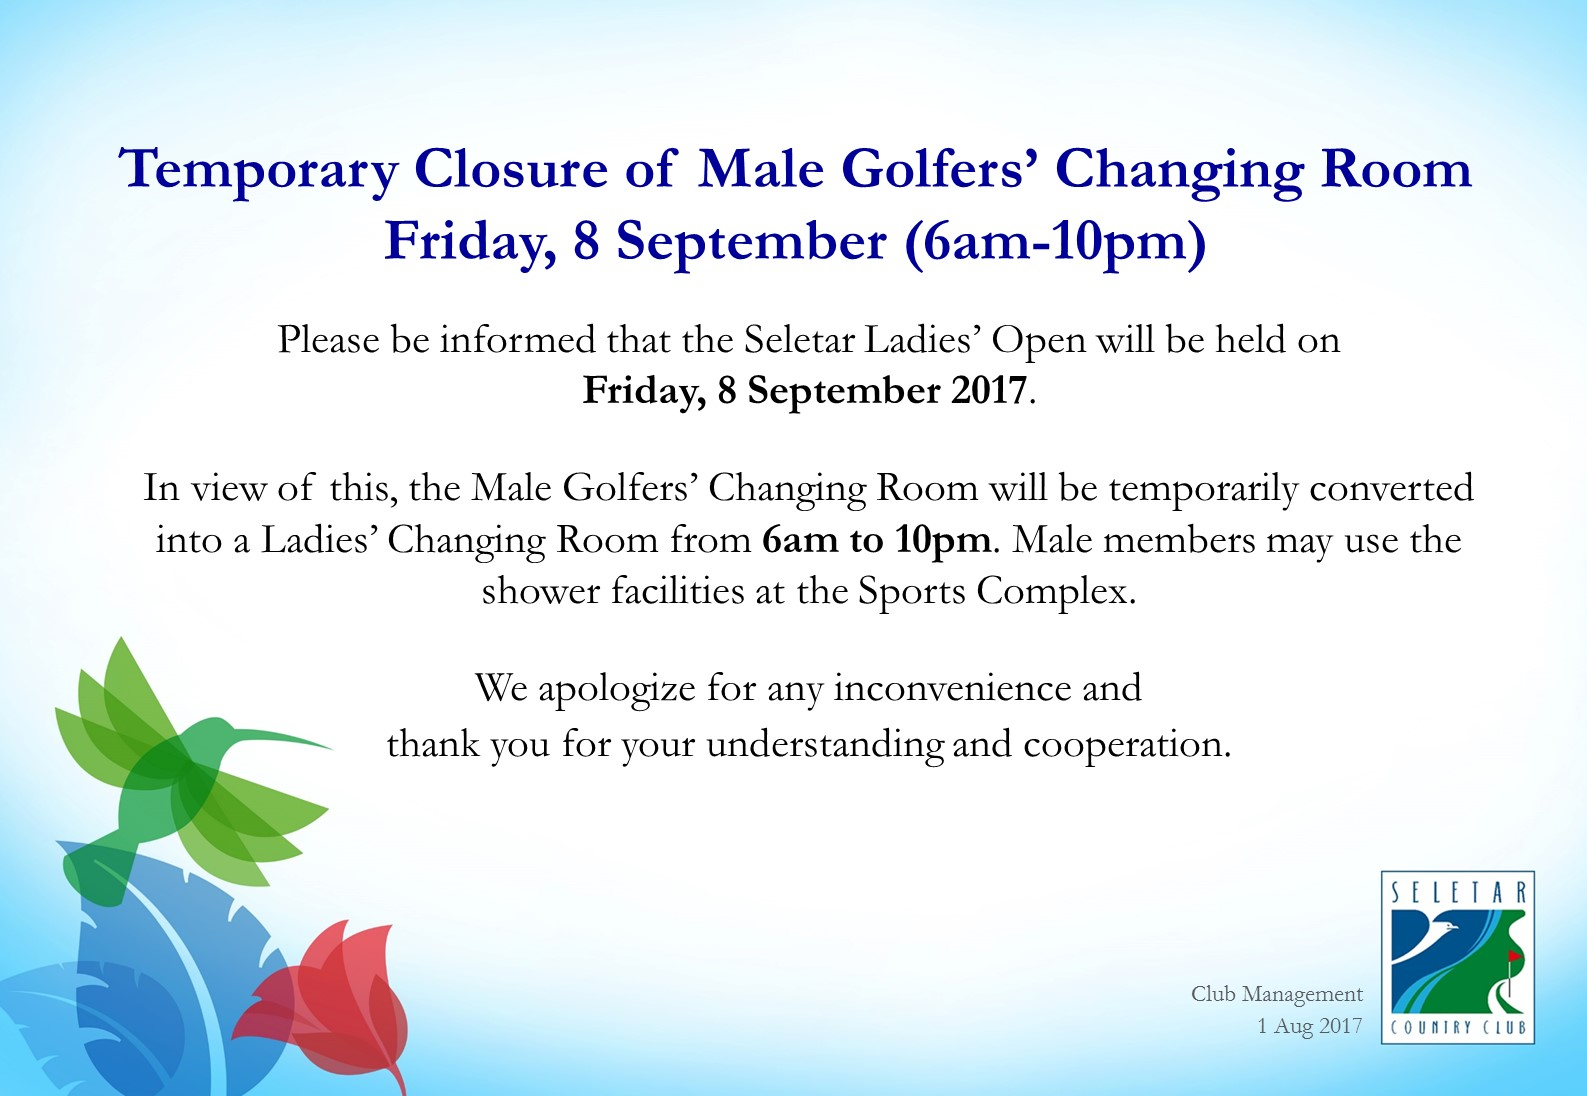 Temporary closure of Men Golfers' Changing Room